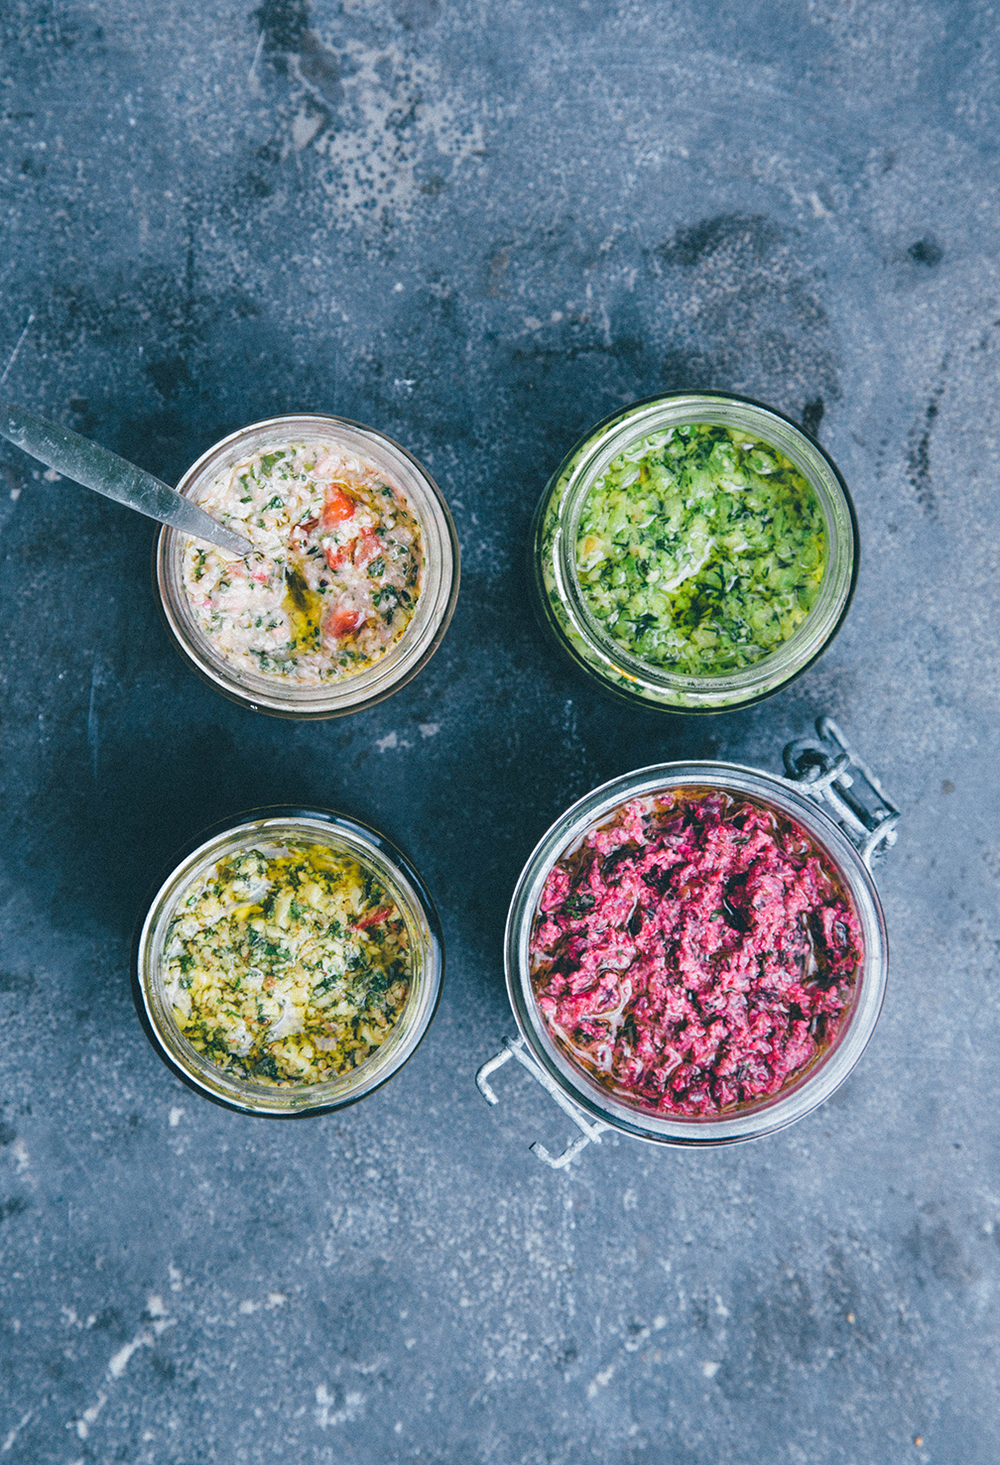 From the left: Sweetie, a strawberry & basil pesto. Nordic: a cdill &  green pea pesto. Asia: a cilantro, lime and peanut pesto. Bohemia: a roasted beet and sunflower pesto.